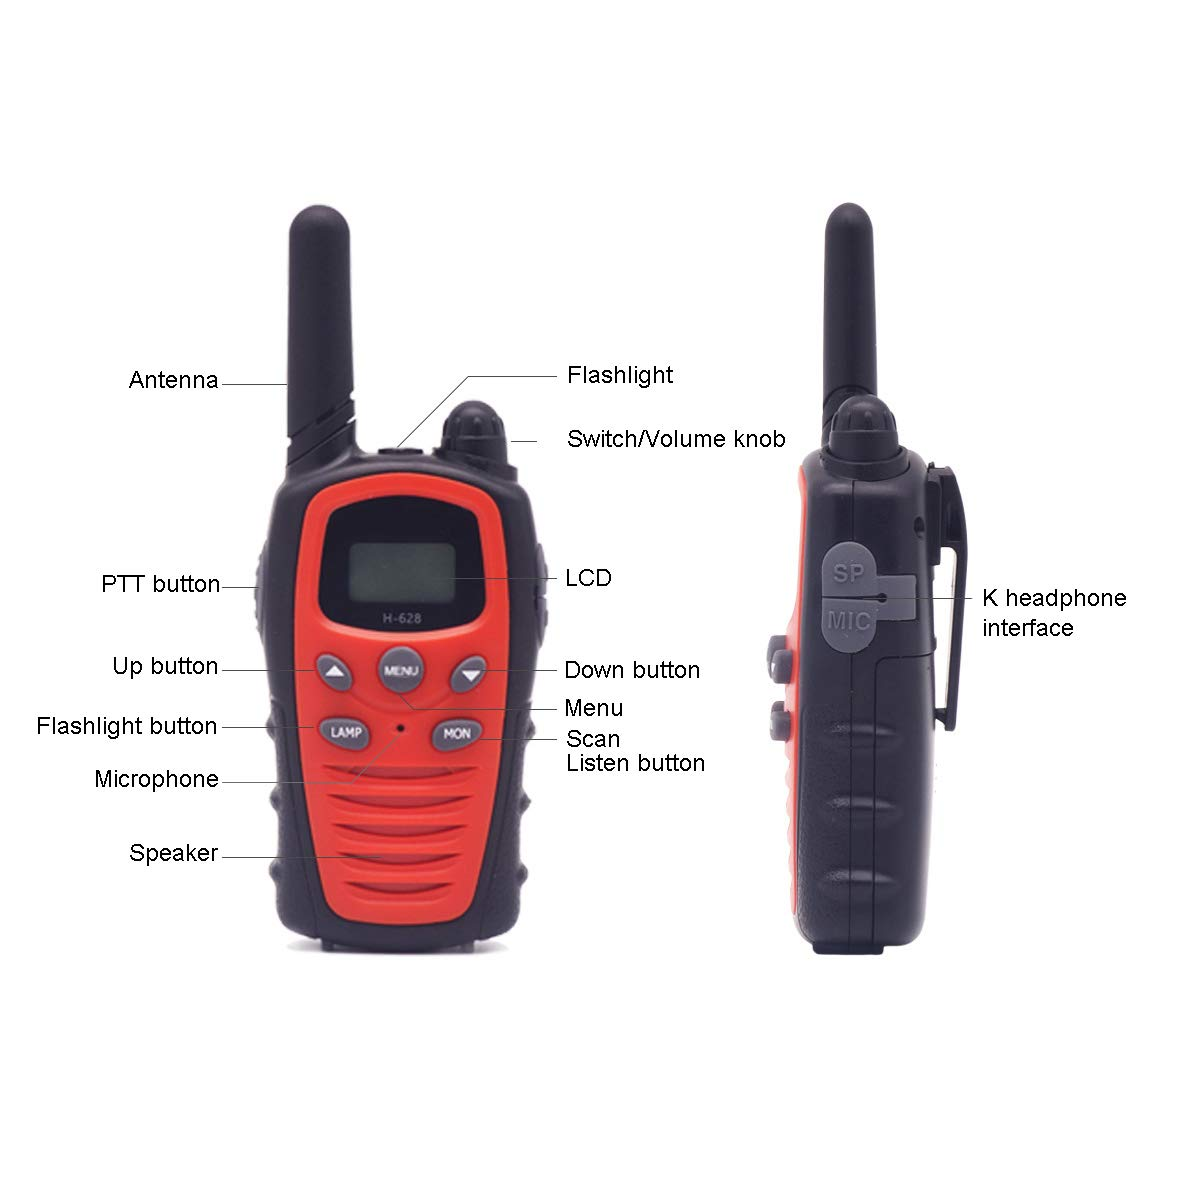 Banbu Toys for 3-12 Year Old Boys, Teen Girl Gifts, Walkie Talkies for Kids Teen Boy Gifts Birthday,Red by Banbu (Image #6)